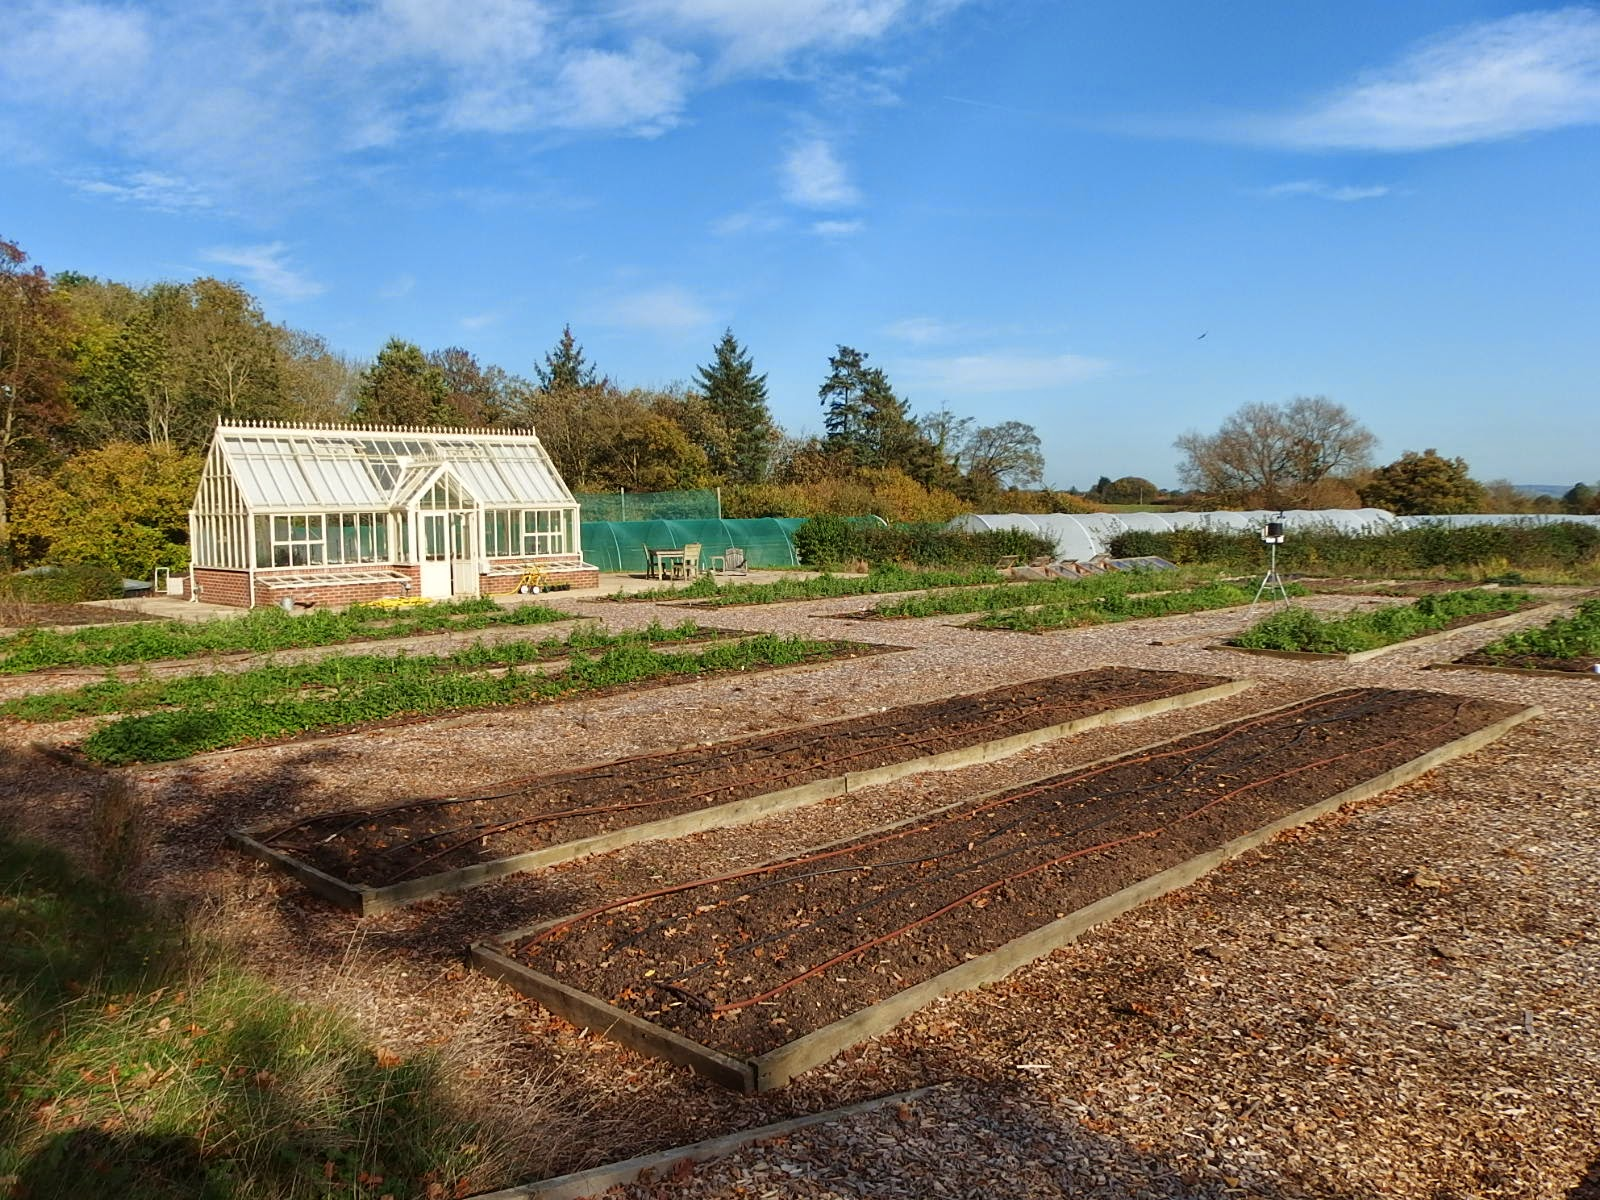 View of the nursery stock beds and greenhouse